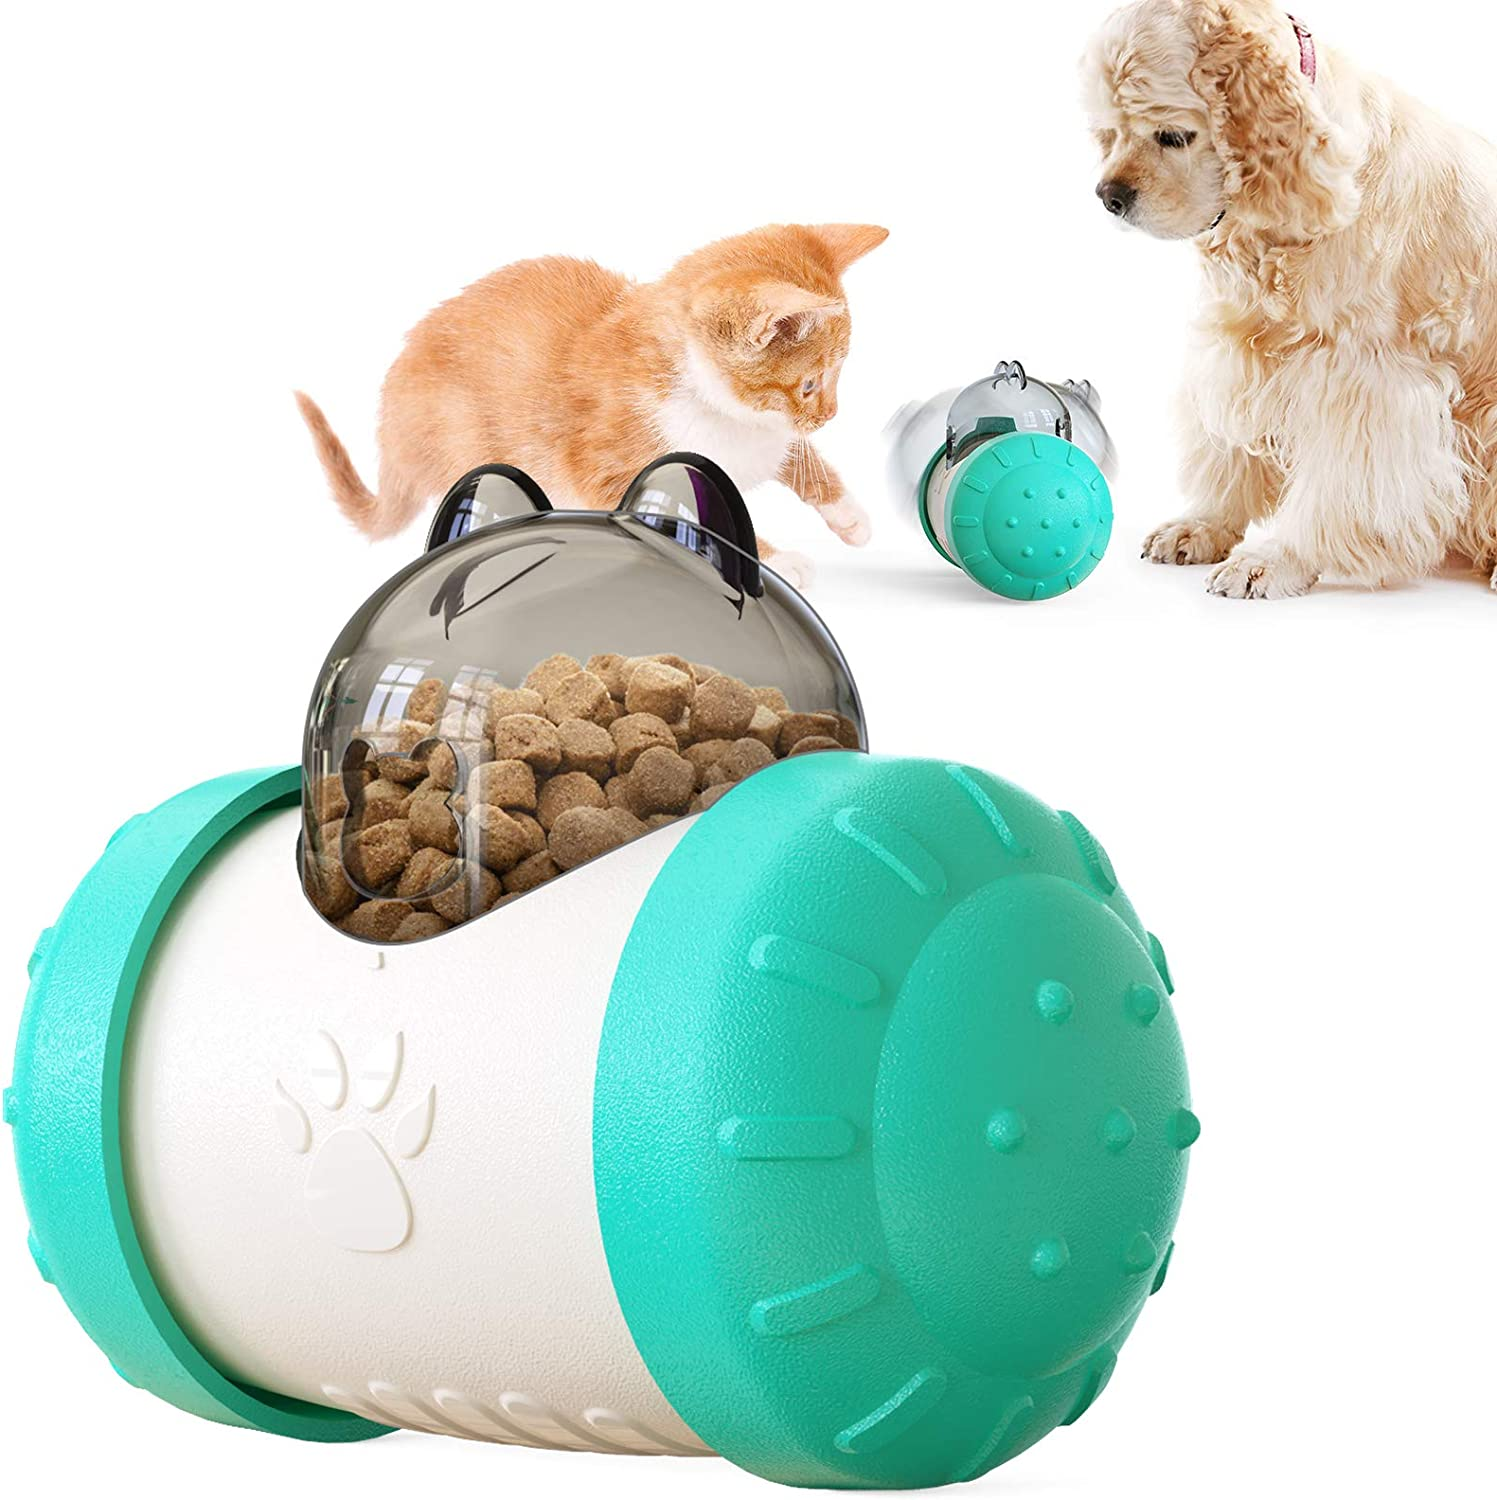 Dog & Cat Treat Dispensing Toy, Food Dispenser Toy, Interactive Puzzle Pet Toy Food Slow Feeder for Puppy and Kitten